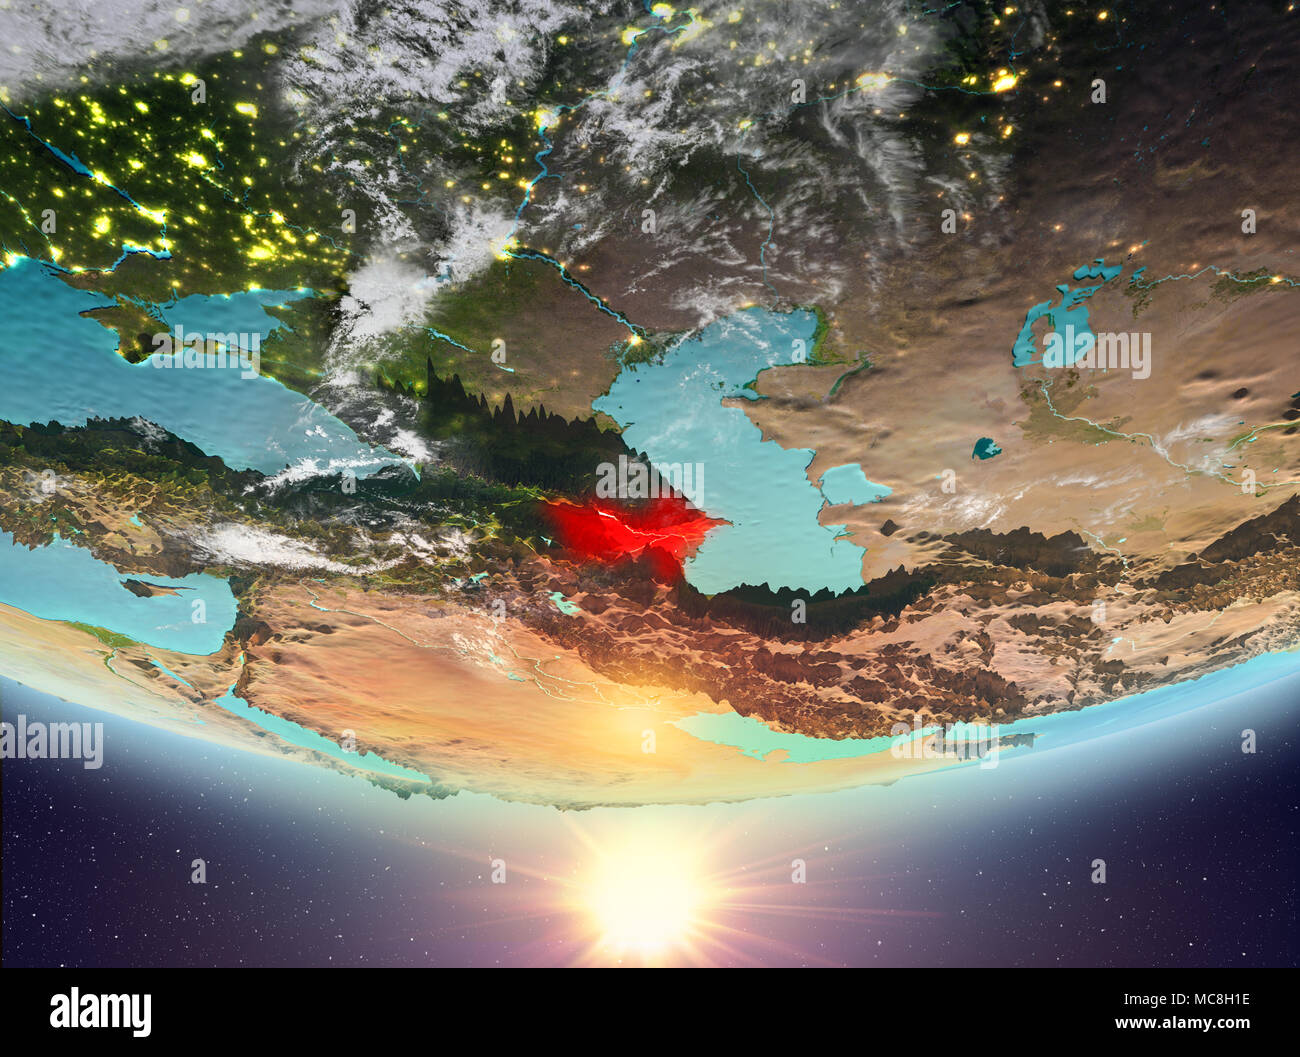 Azerbaijan during sunrise highlighted in red on planet Earth with clouds. 3D illustration. Elements of this image furnished by NASA. - Stock Image